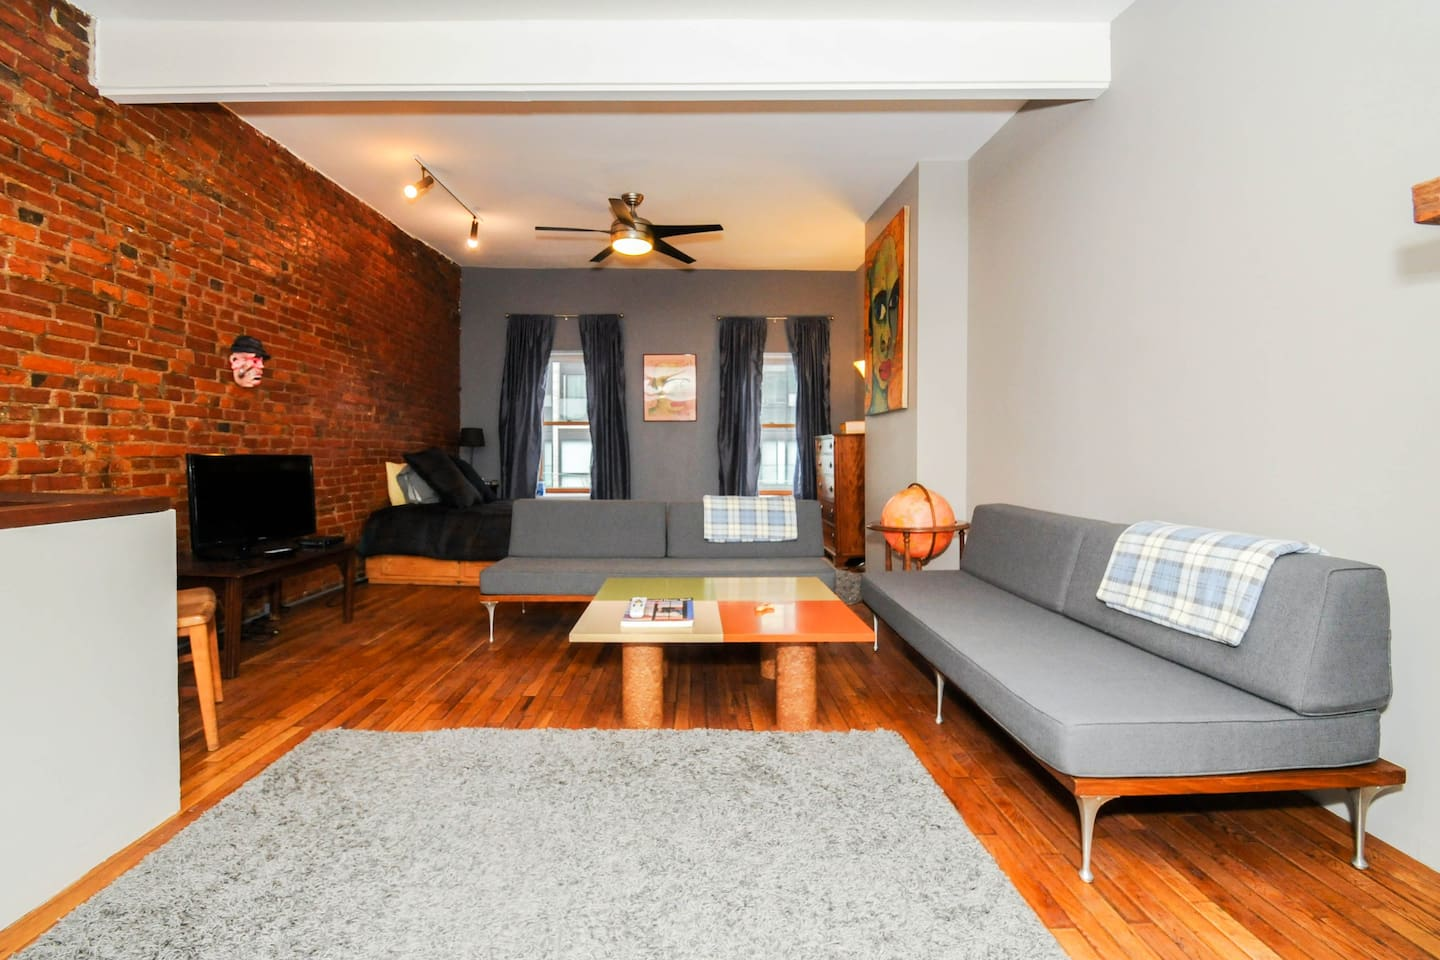 Housed in a pre-war former neon factory. Spacious 3rd floor loft  Beautiful exposed brick walls New kitchen with stainless steel appliances.  Great cross ventilation